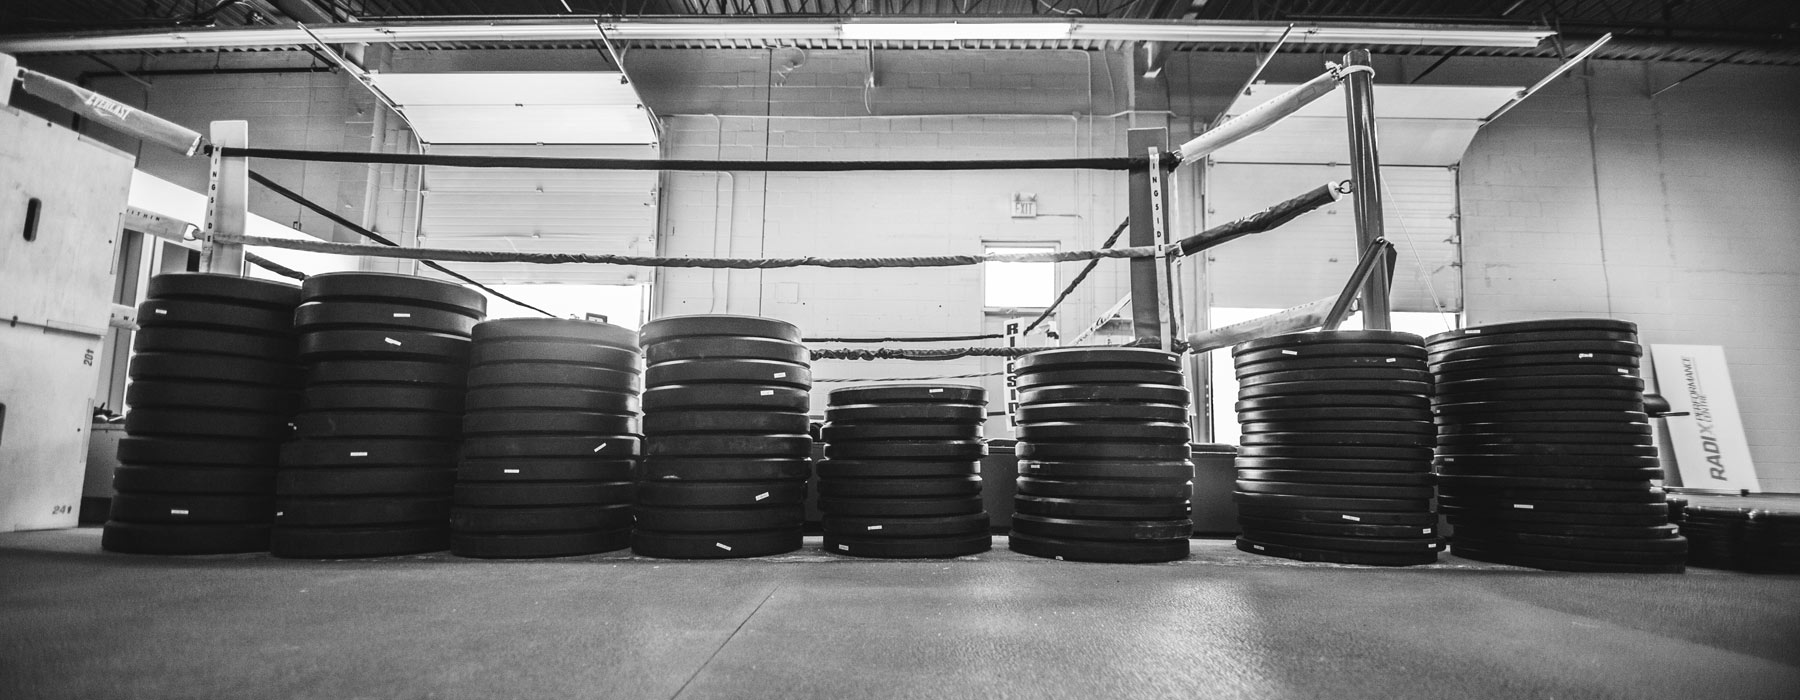 Our Facility - Weight Plates